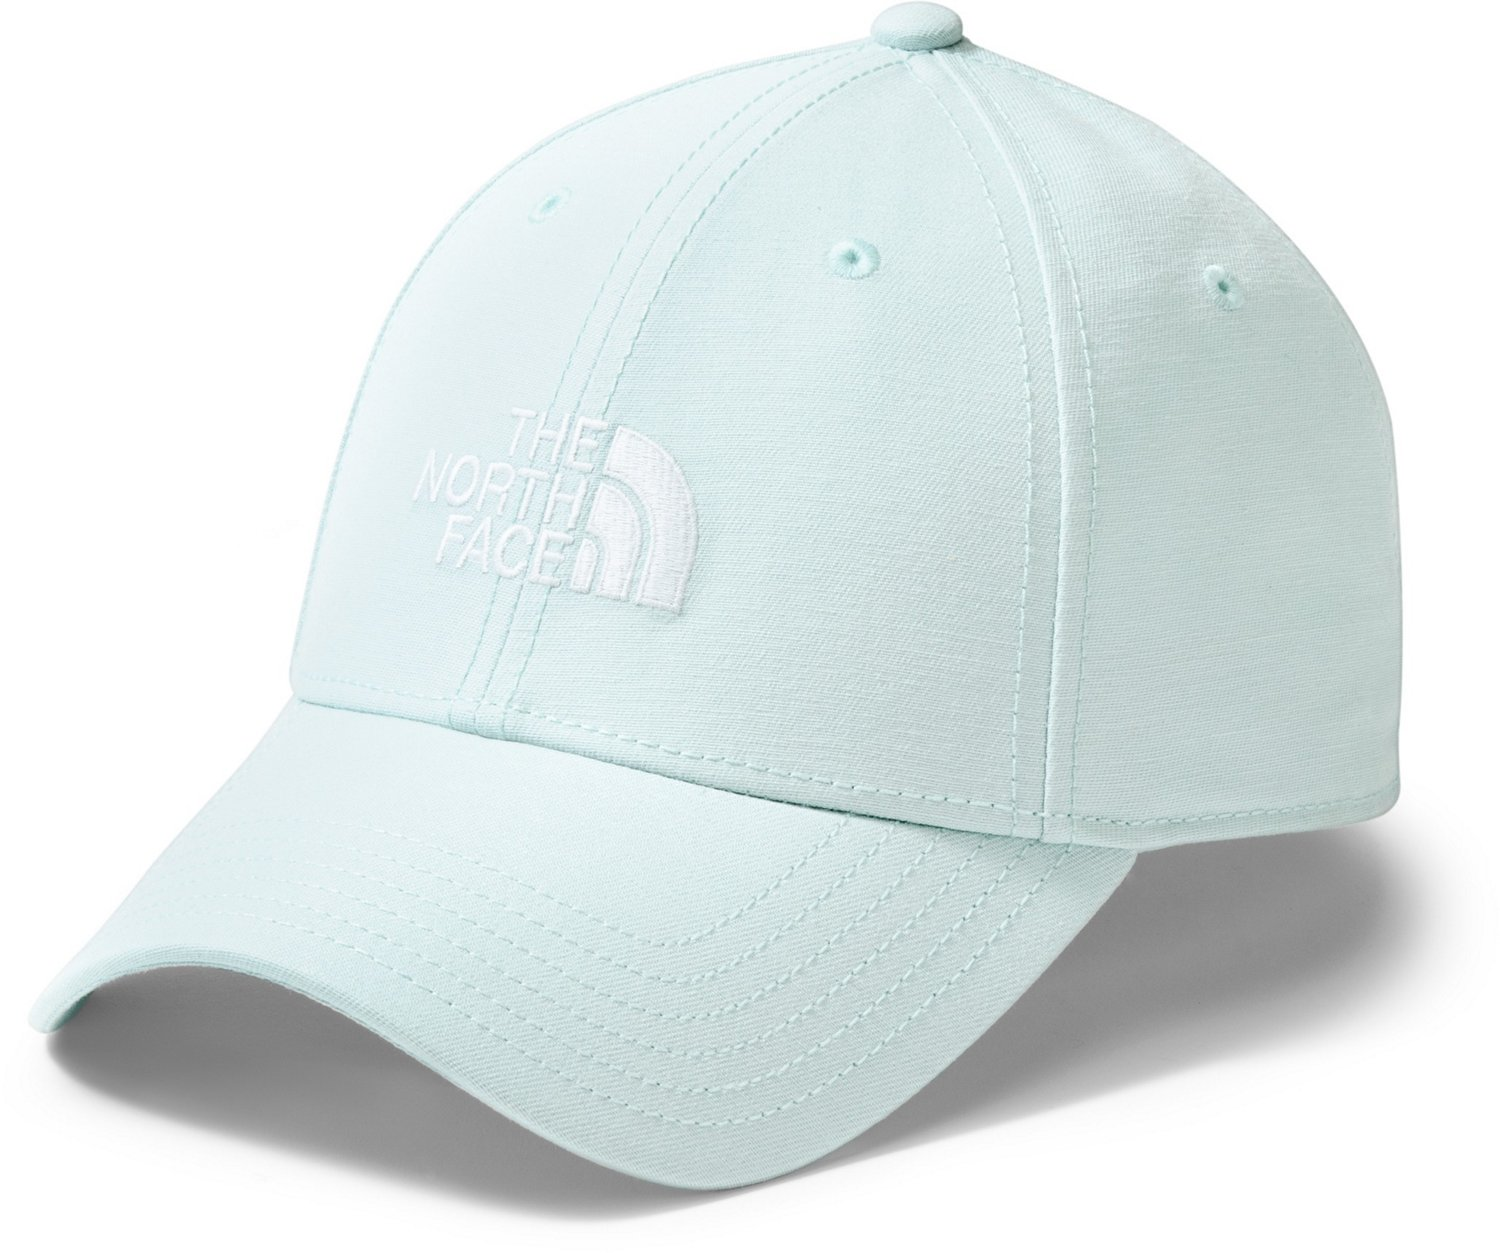 aea4d0d5549bb Display product reviews for The North Face Women s Mountain Lifestyle 66  Classic Hat